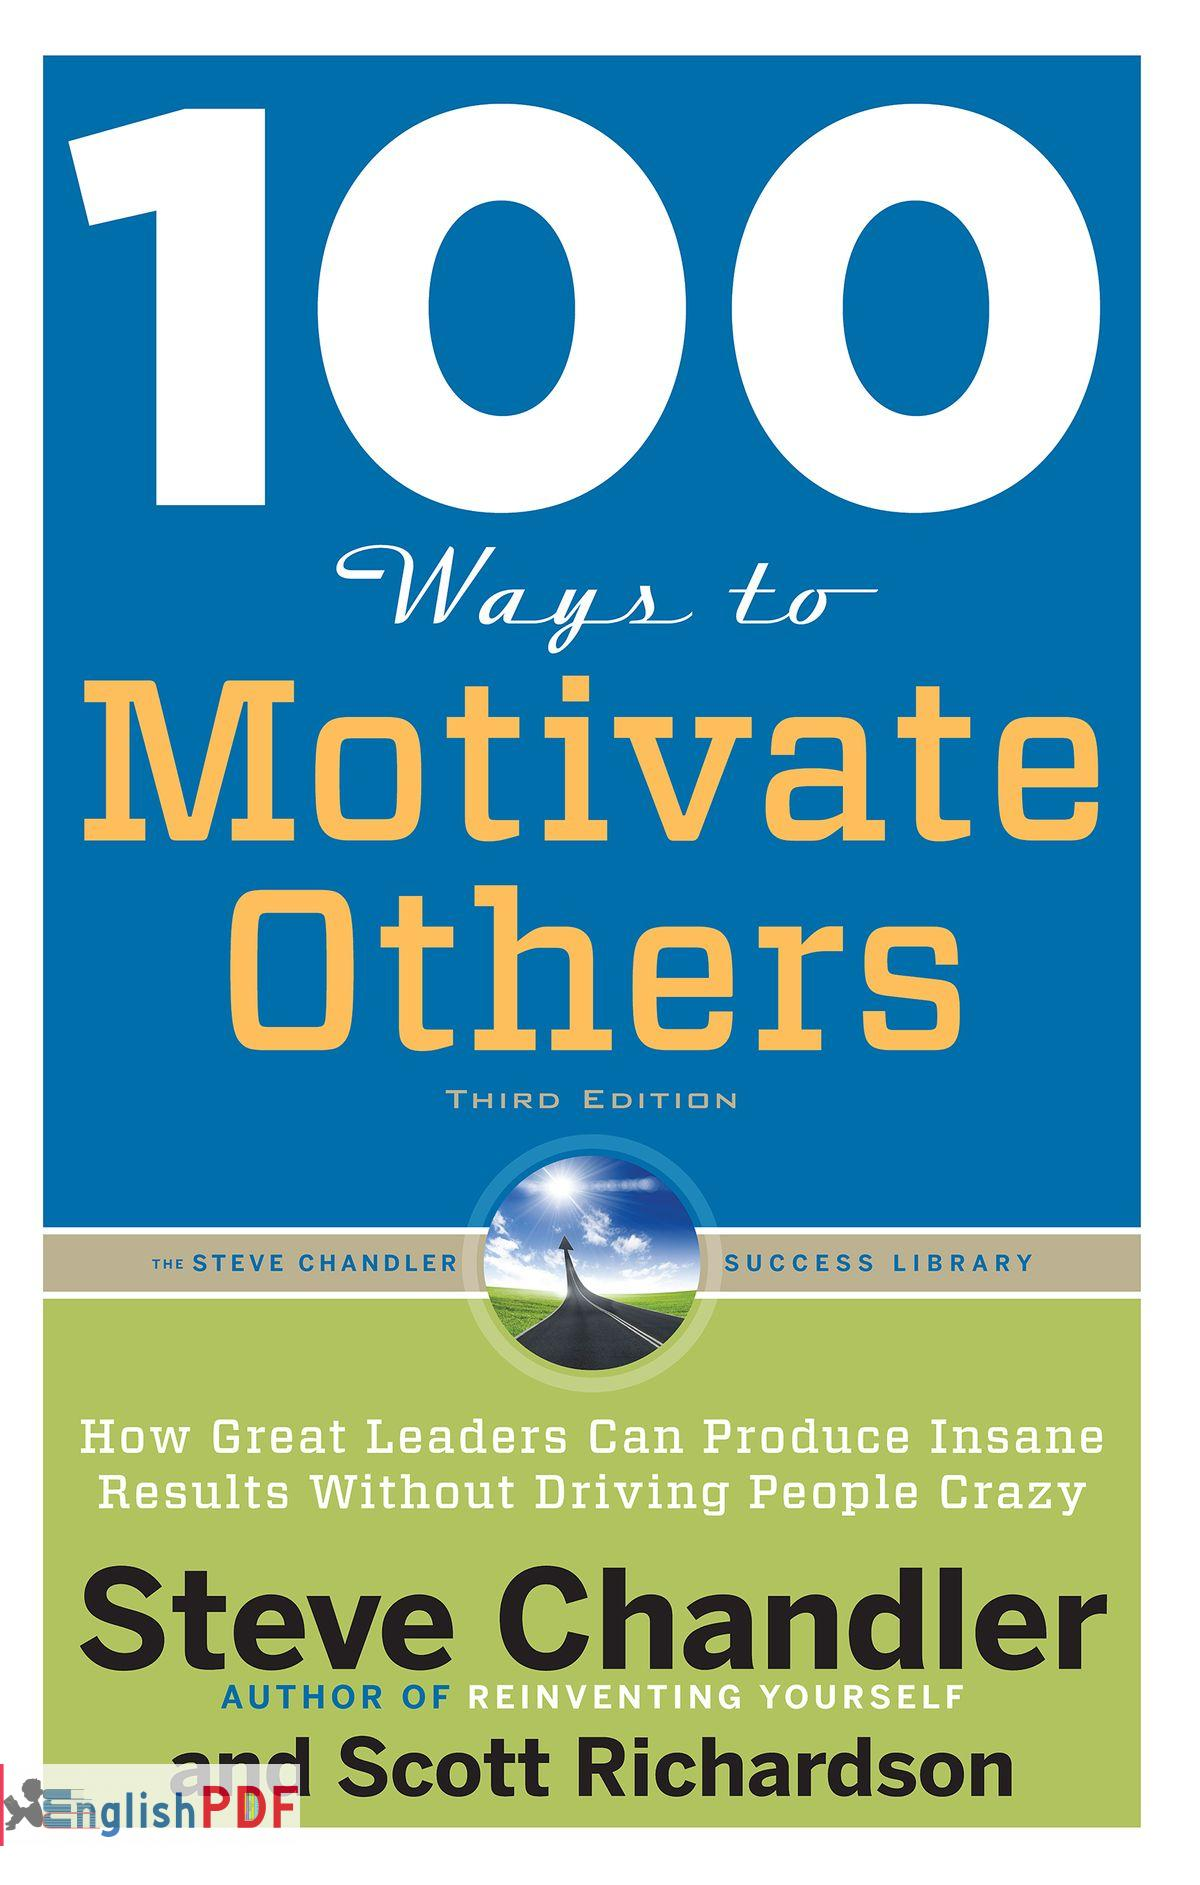 100 Ways To Motivate Others PDF Free Download